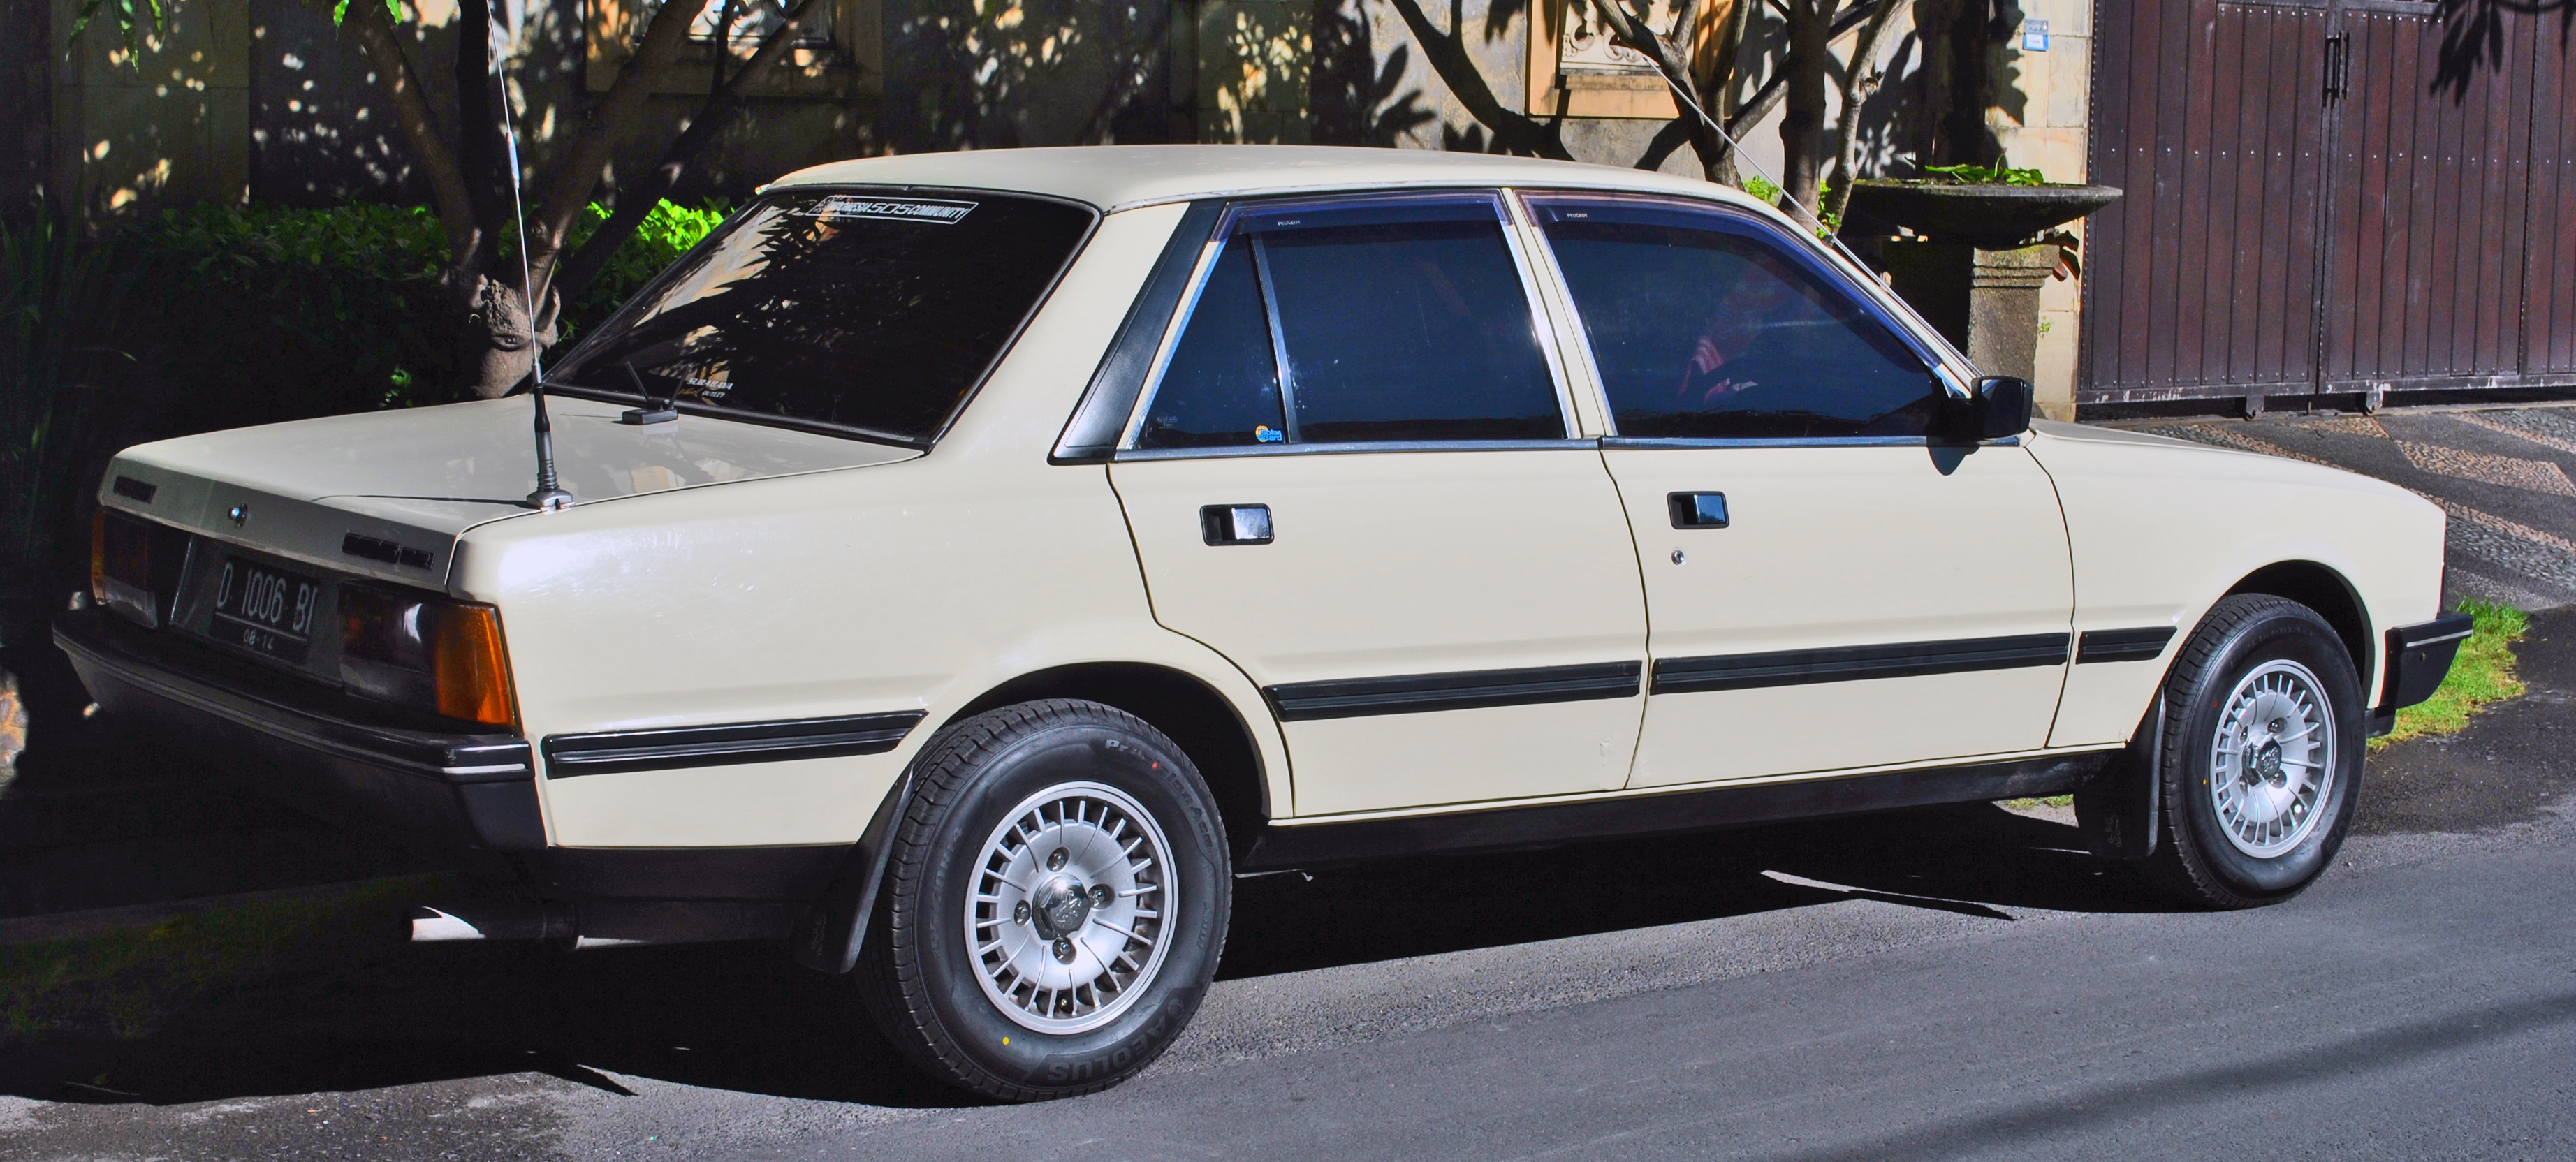 file:peugeot 505 gr rear side, denpasar - wikimedia commons